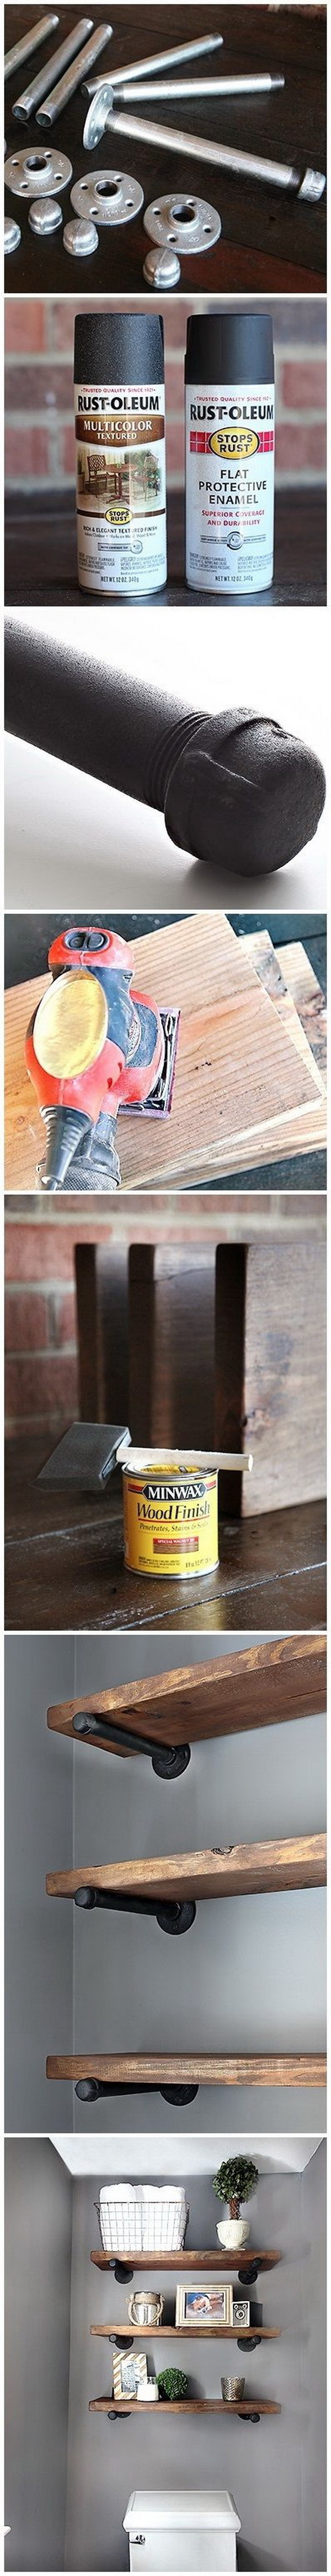 DIY Restoration Hardware Inspired Shelf.